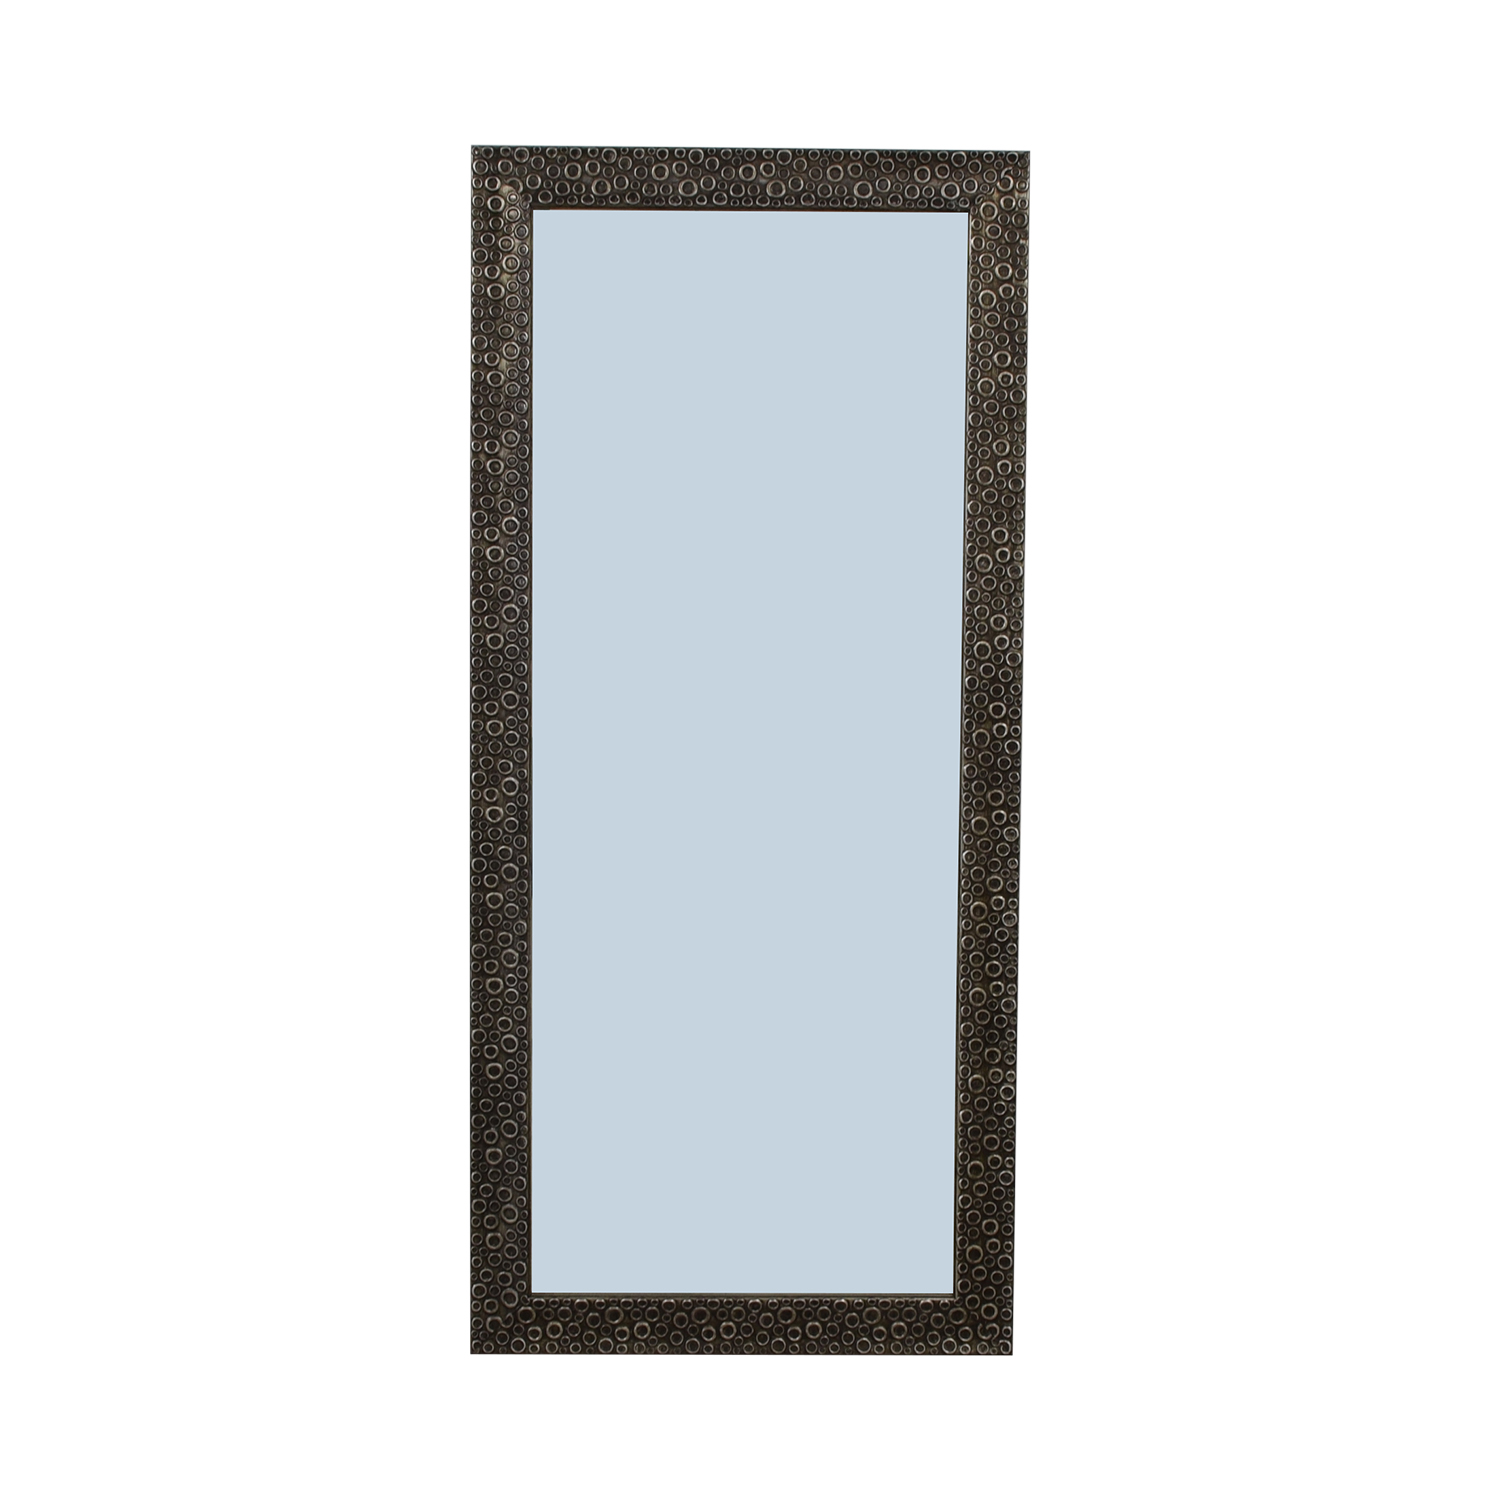 Framed Standing Floor Mirror sale